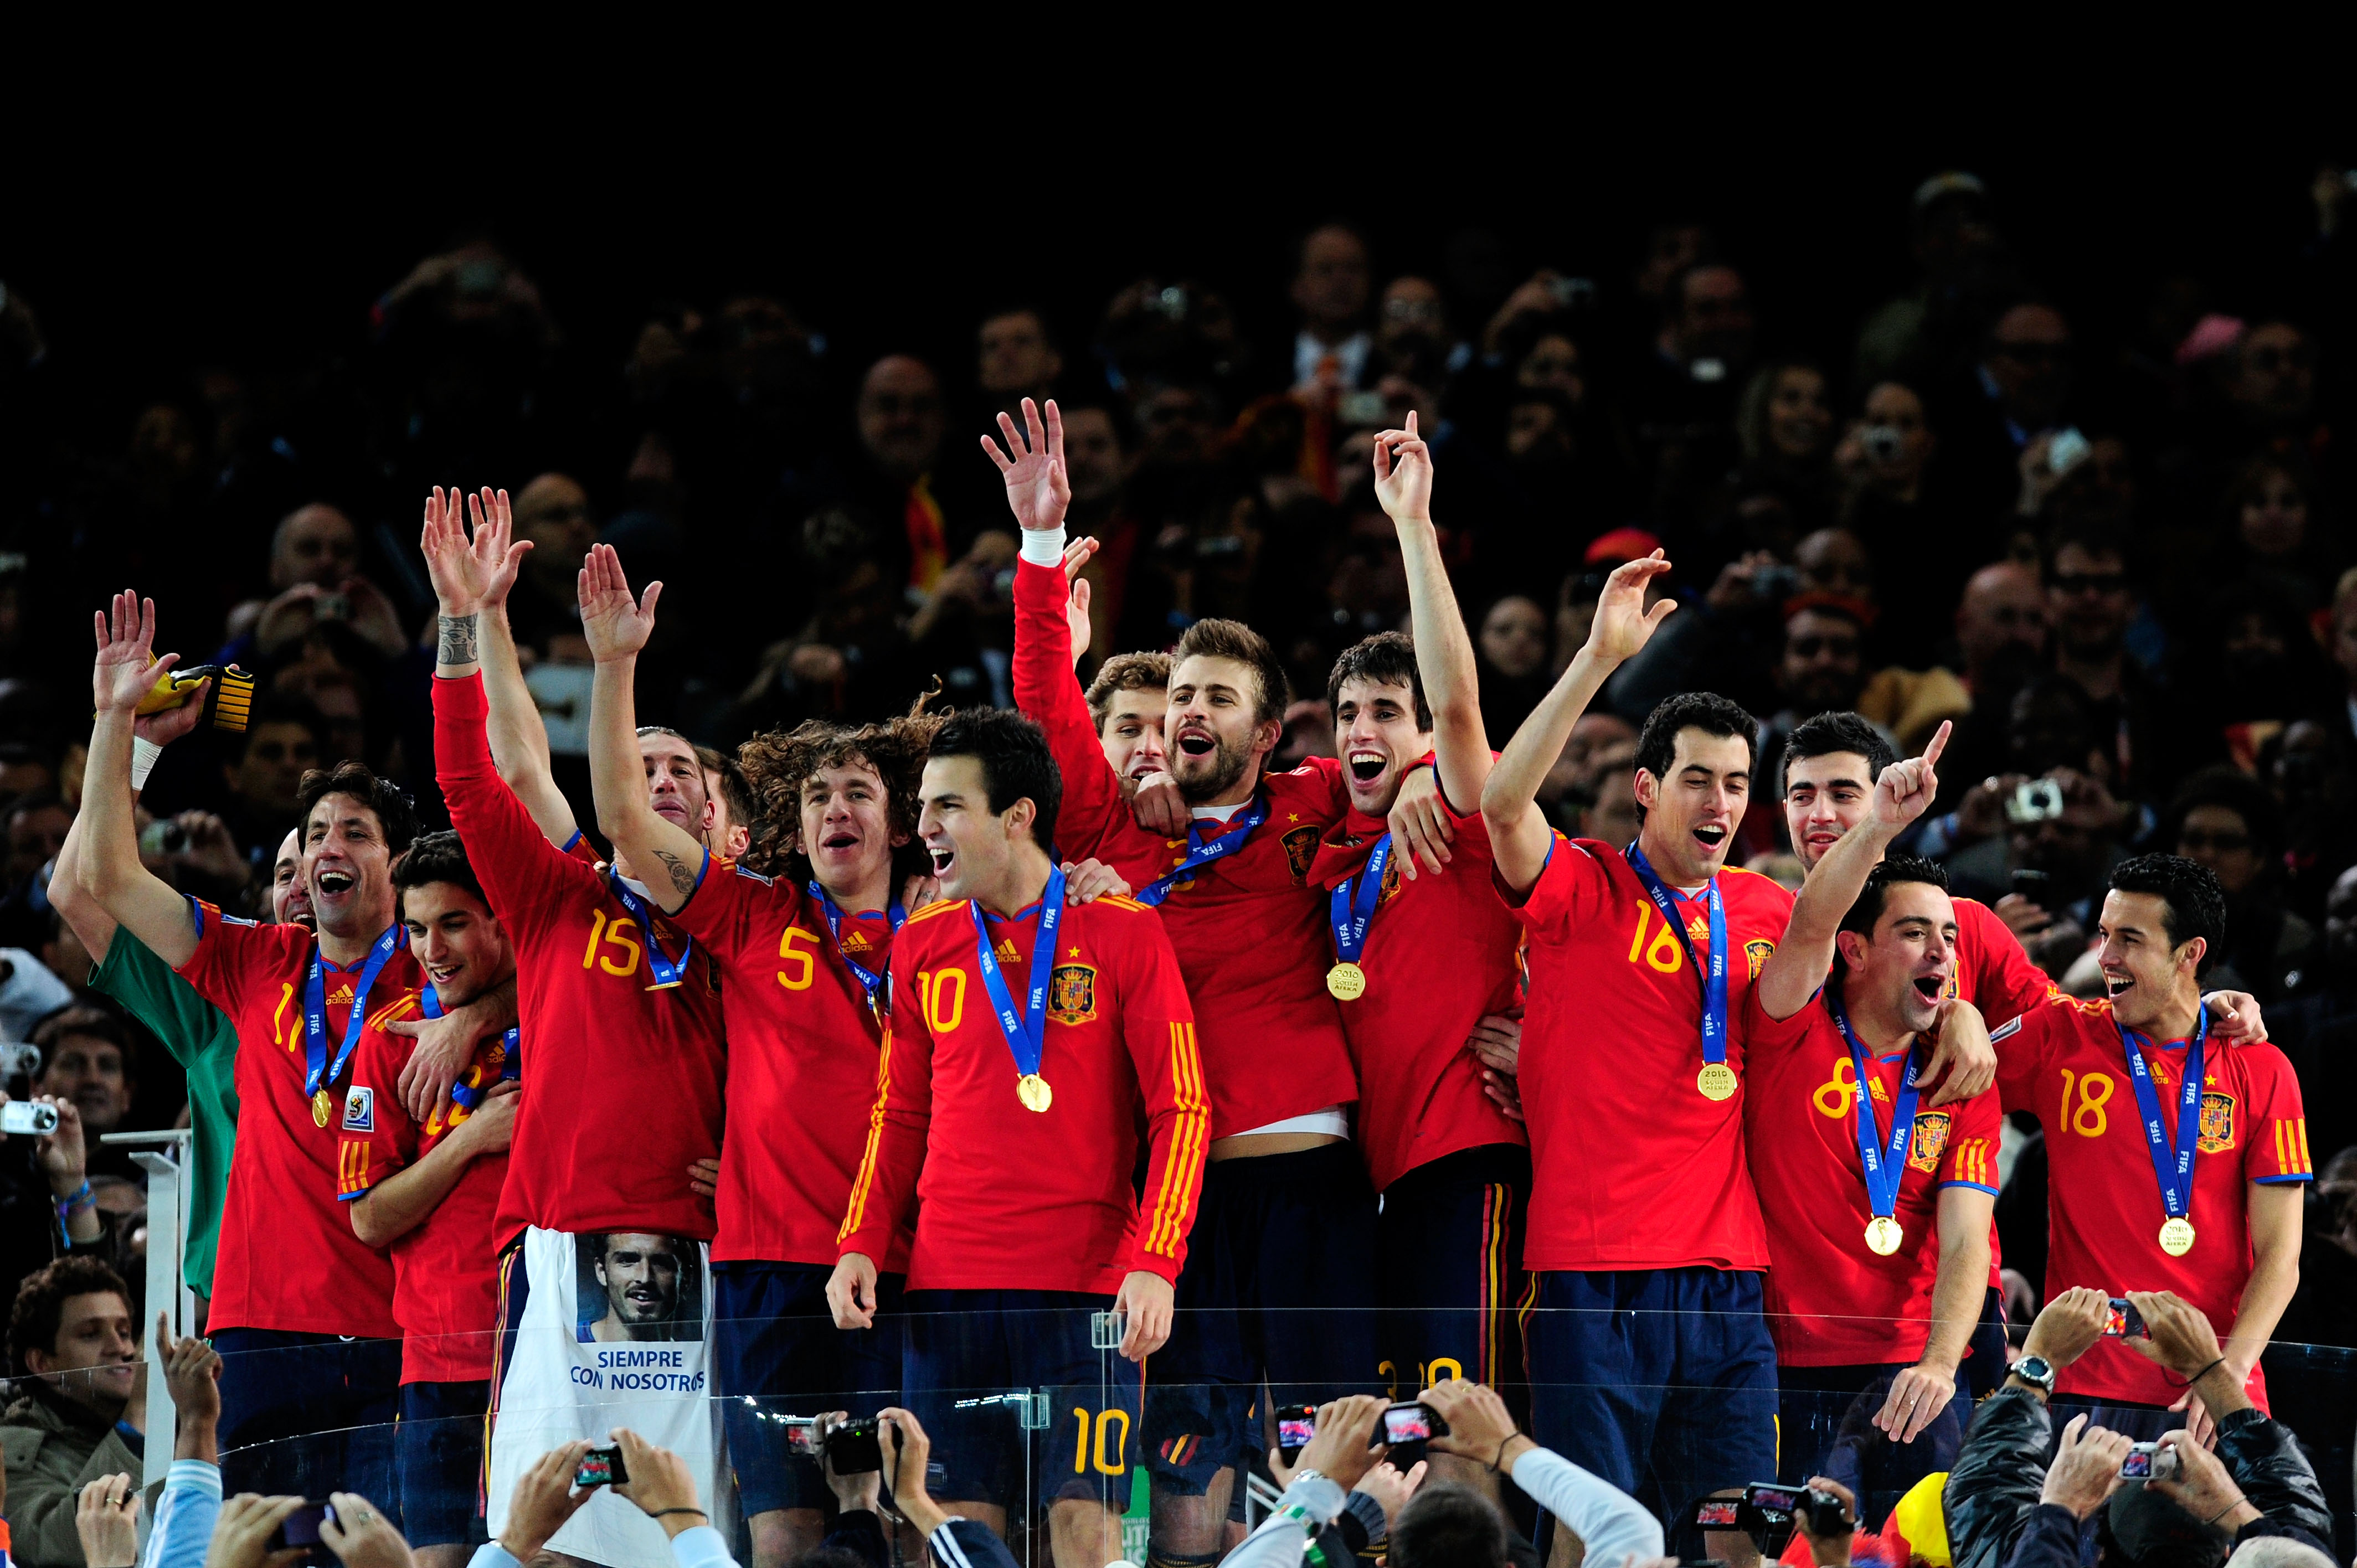 JOHANNESBURG, SOUTH AFRICA - JULY 11:  The Spain team celebrate winning the World Cup during the 2010 FIFA World Cup South Africa Final match between Netherlands and Spain at Soccer City Stadium on July 11, 2010 in Johannesburg, South Africa.  (Photo by J